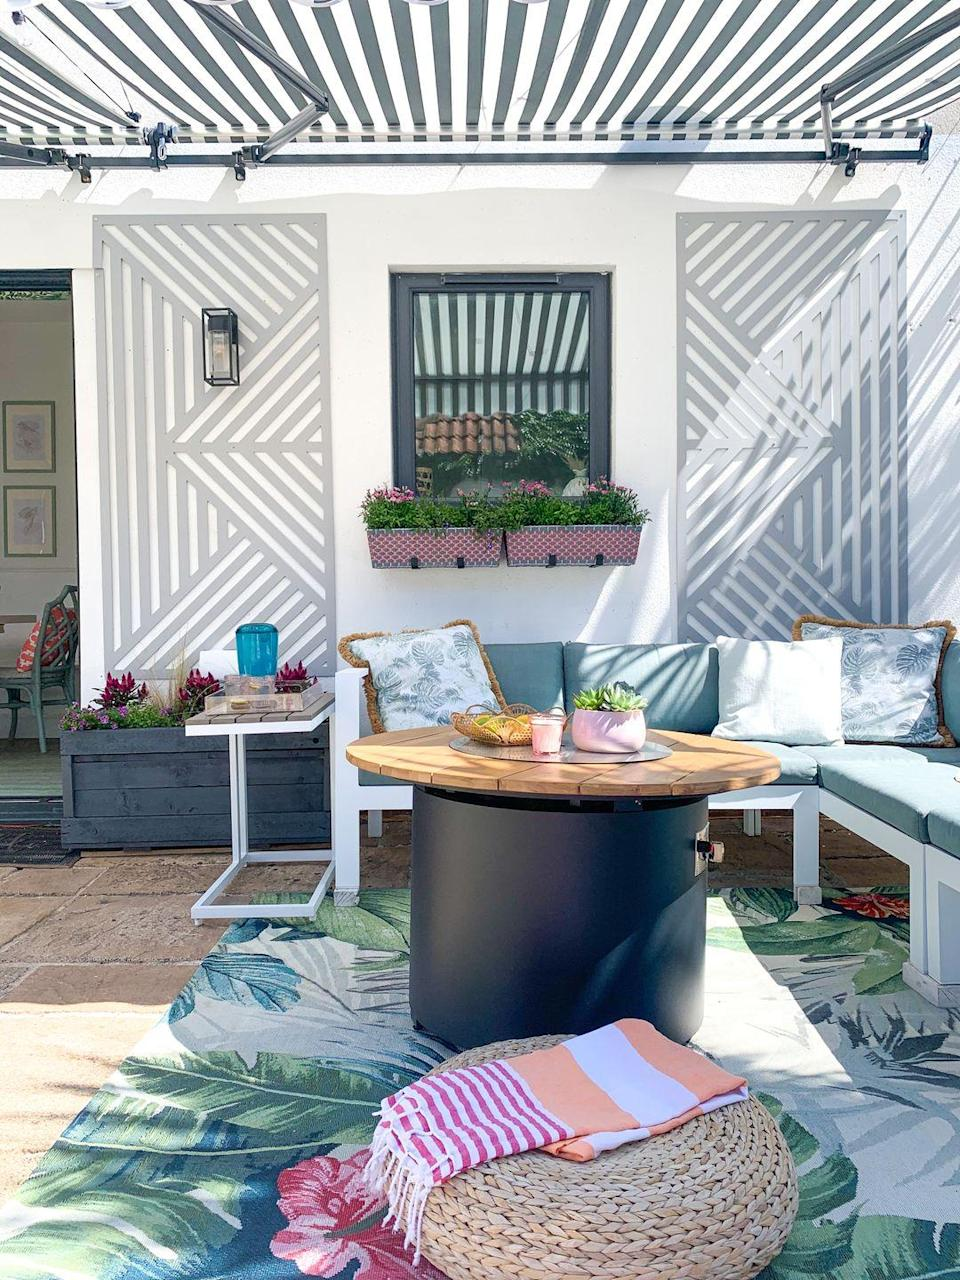 <p>Packed with personality, this charming seating area has everything you need for a sunny weekend in the garden.</p>